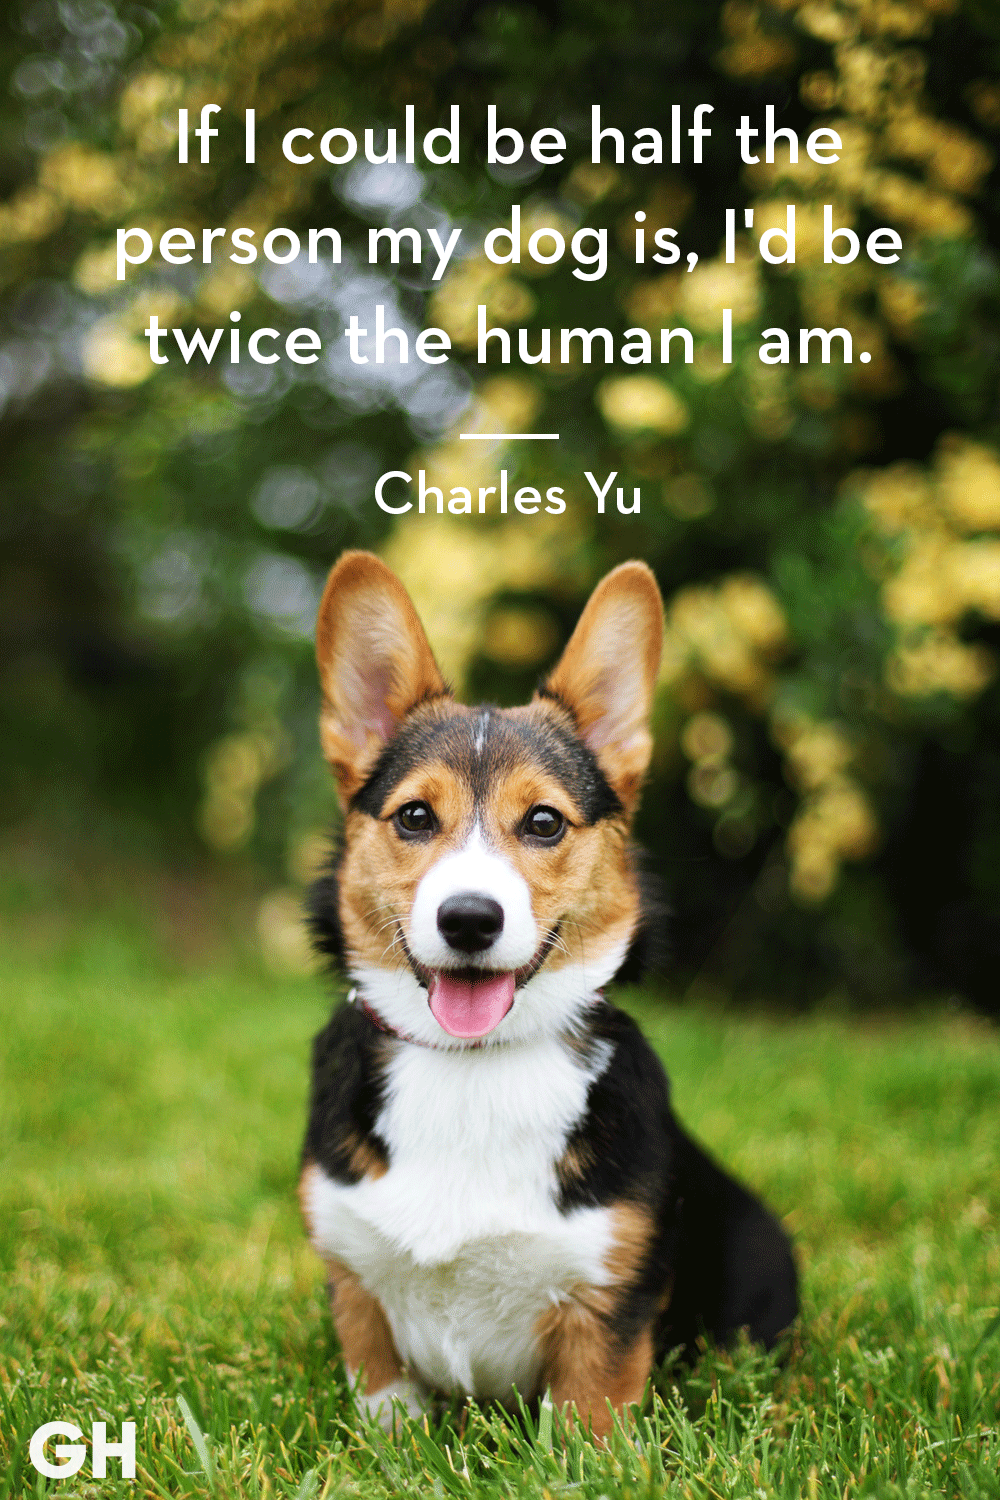 30 Dog Quotes That'll Inspire You to Hug Your Pup a Little